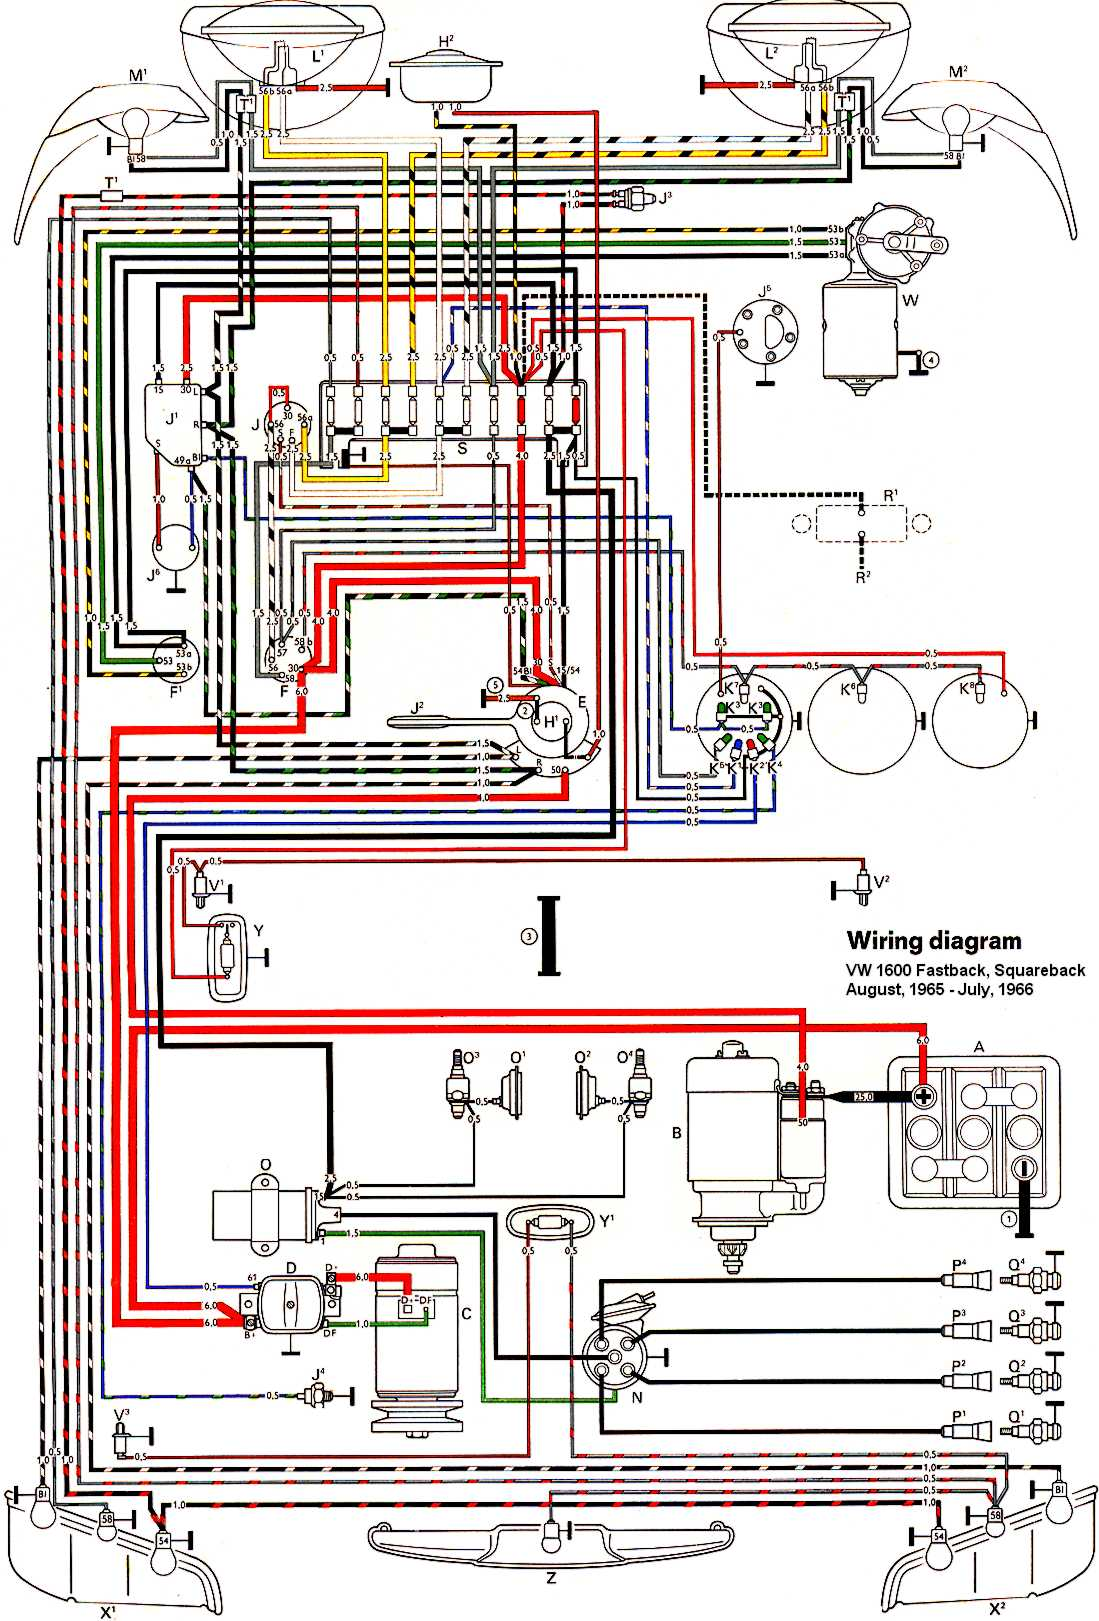 66 vw bug wire diagram of 66 vw bug fuse box diagram thesamba.com :: type 3 wiring diagrams